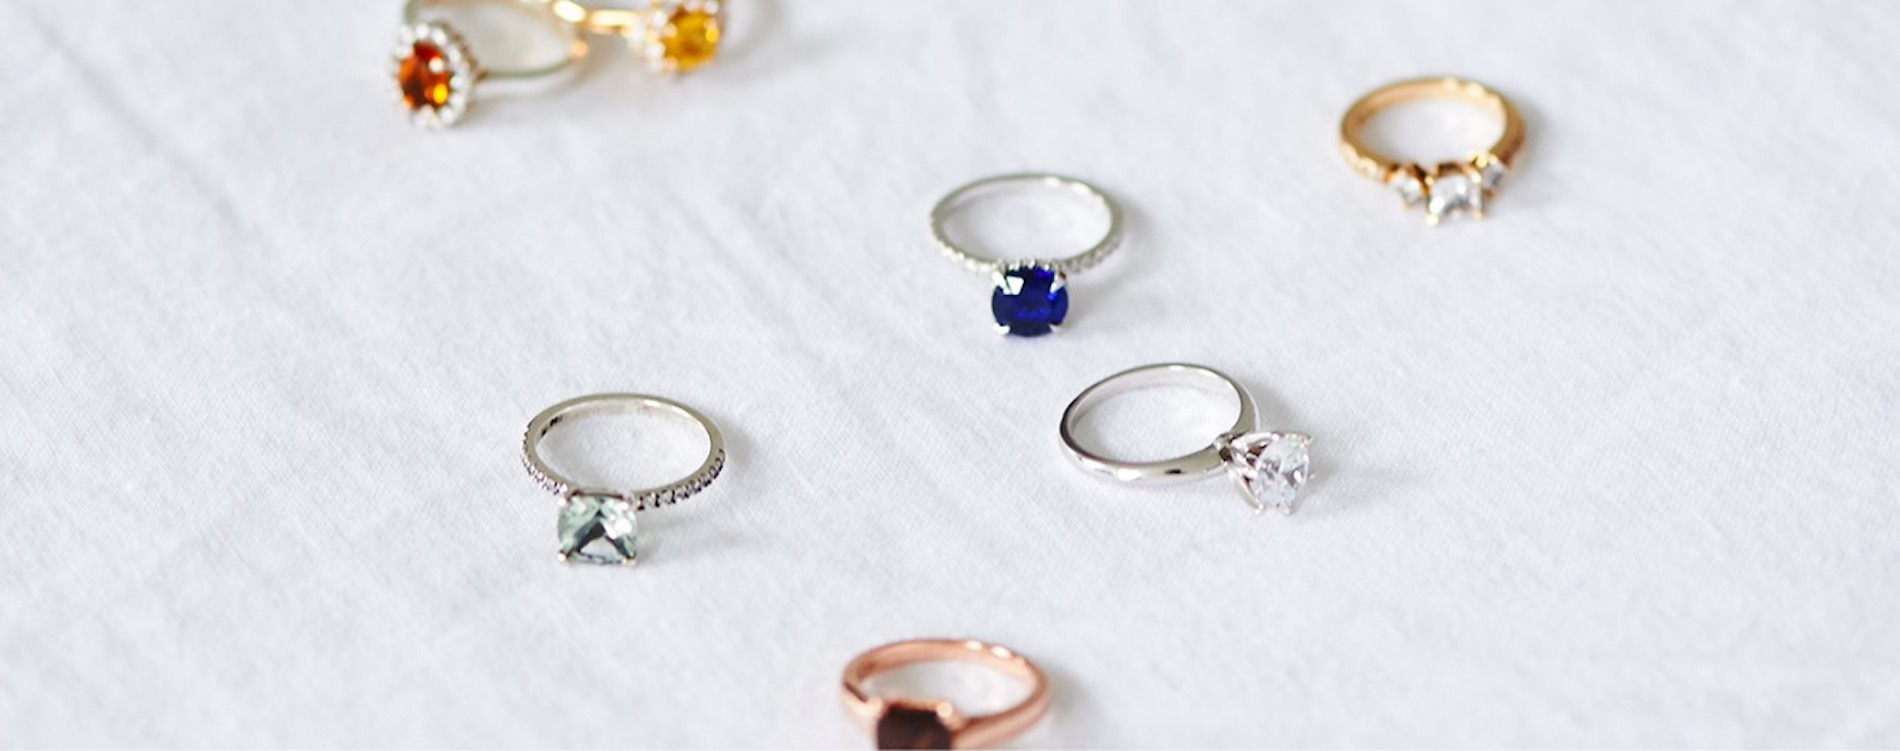 12 Of The Most Dazzling Birthstone Engagement Rings For Every Month Of The Year Bridal Musings